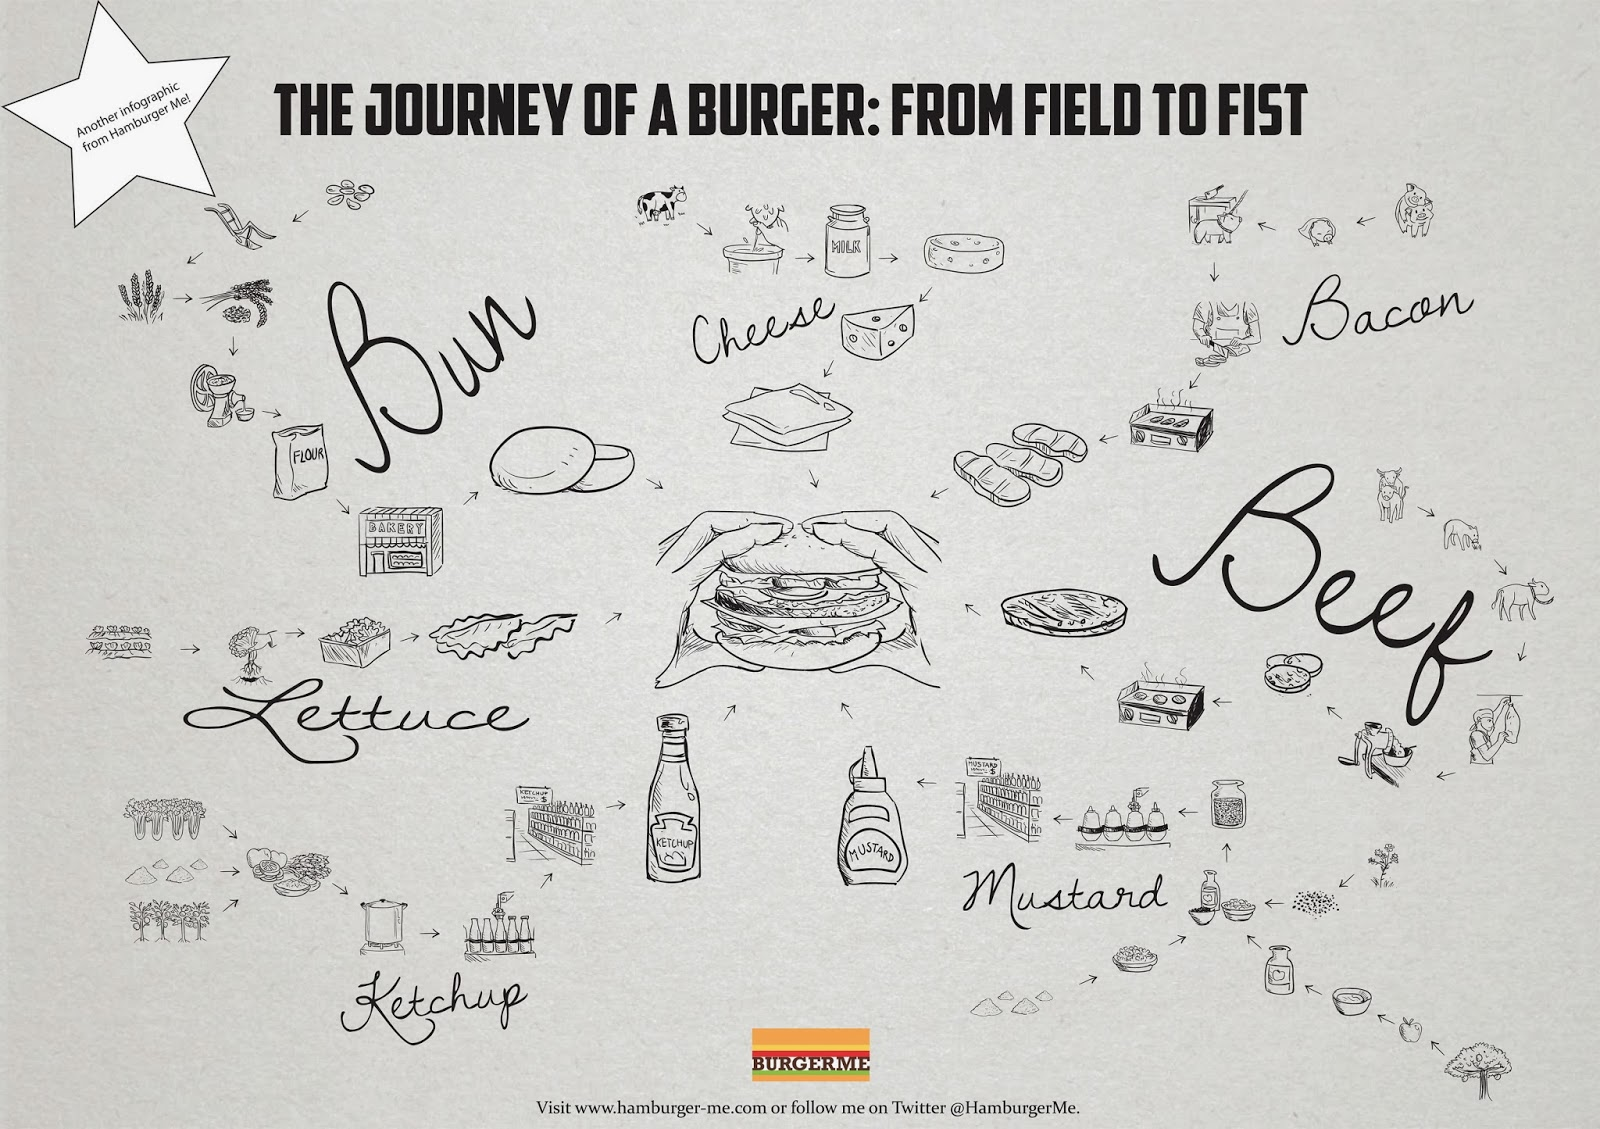 The journey of a burger: From field to fork